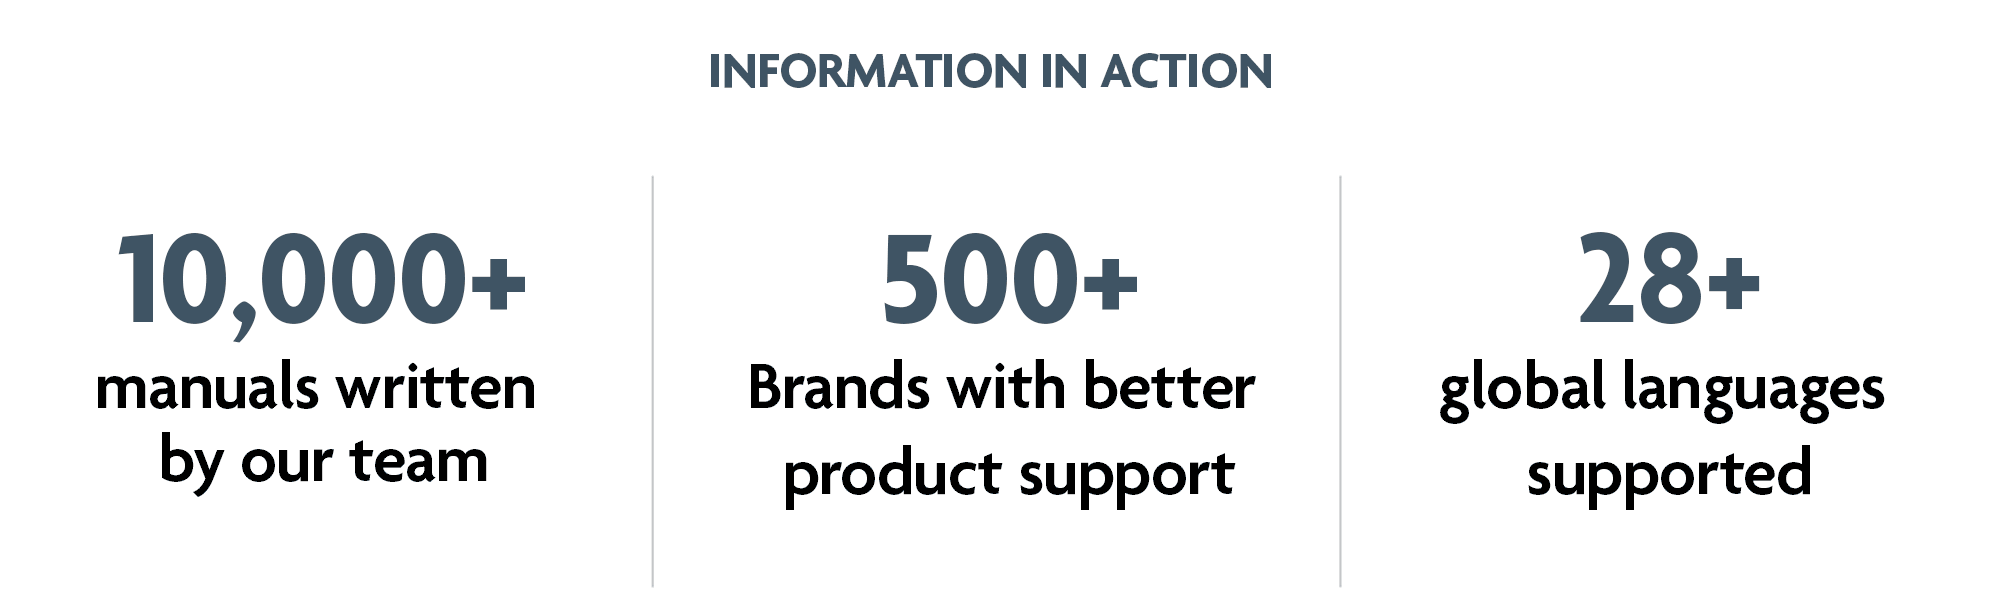 10,000+ manuals written by out team | 500+ brands with better product support | 28+ global languages supported